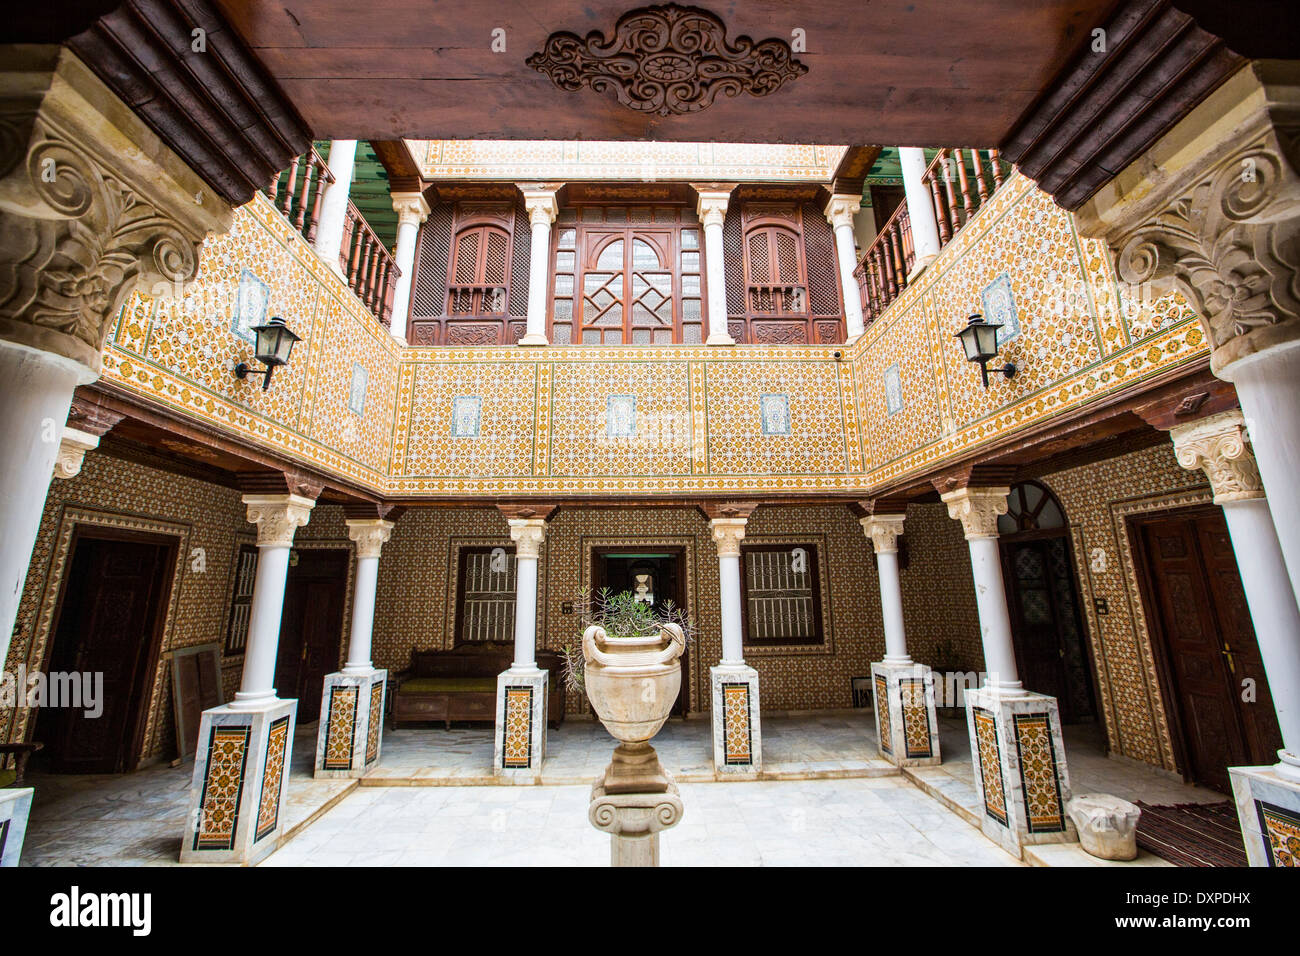 18th century maison du gouverneur governor house called tapis sabra stock photo royalty free. Black Bedroom Furniture Sets. Home Design Ideas